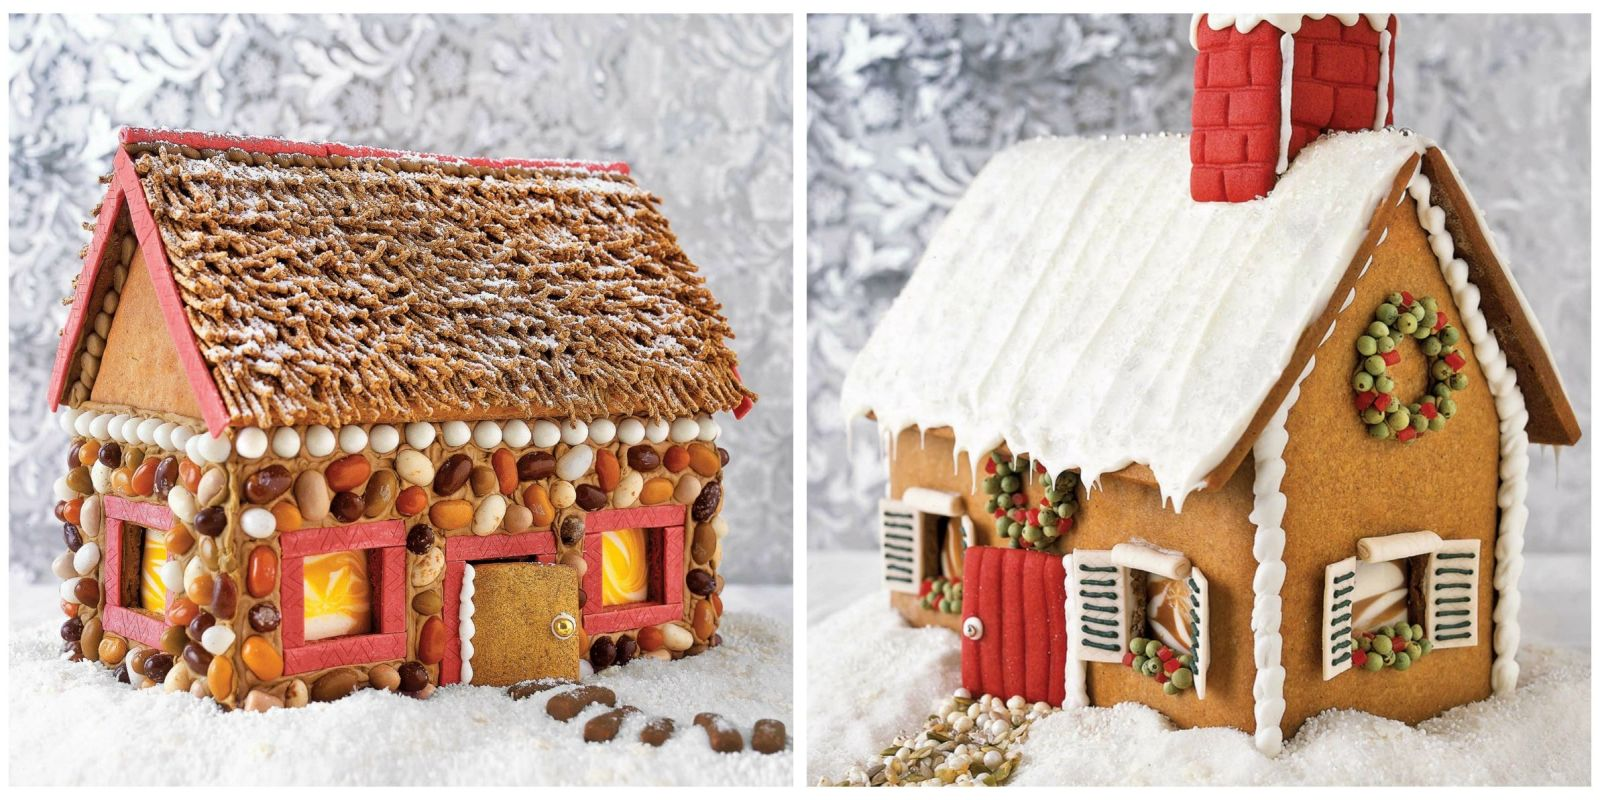 What Is A Good Housewarming Gift 25 Cute Gingerbread House Ideas Amp Pictures How To Make A